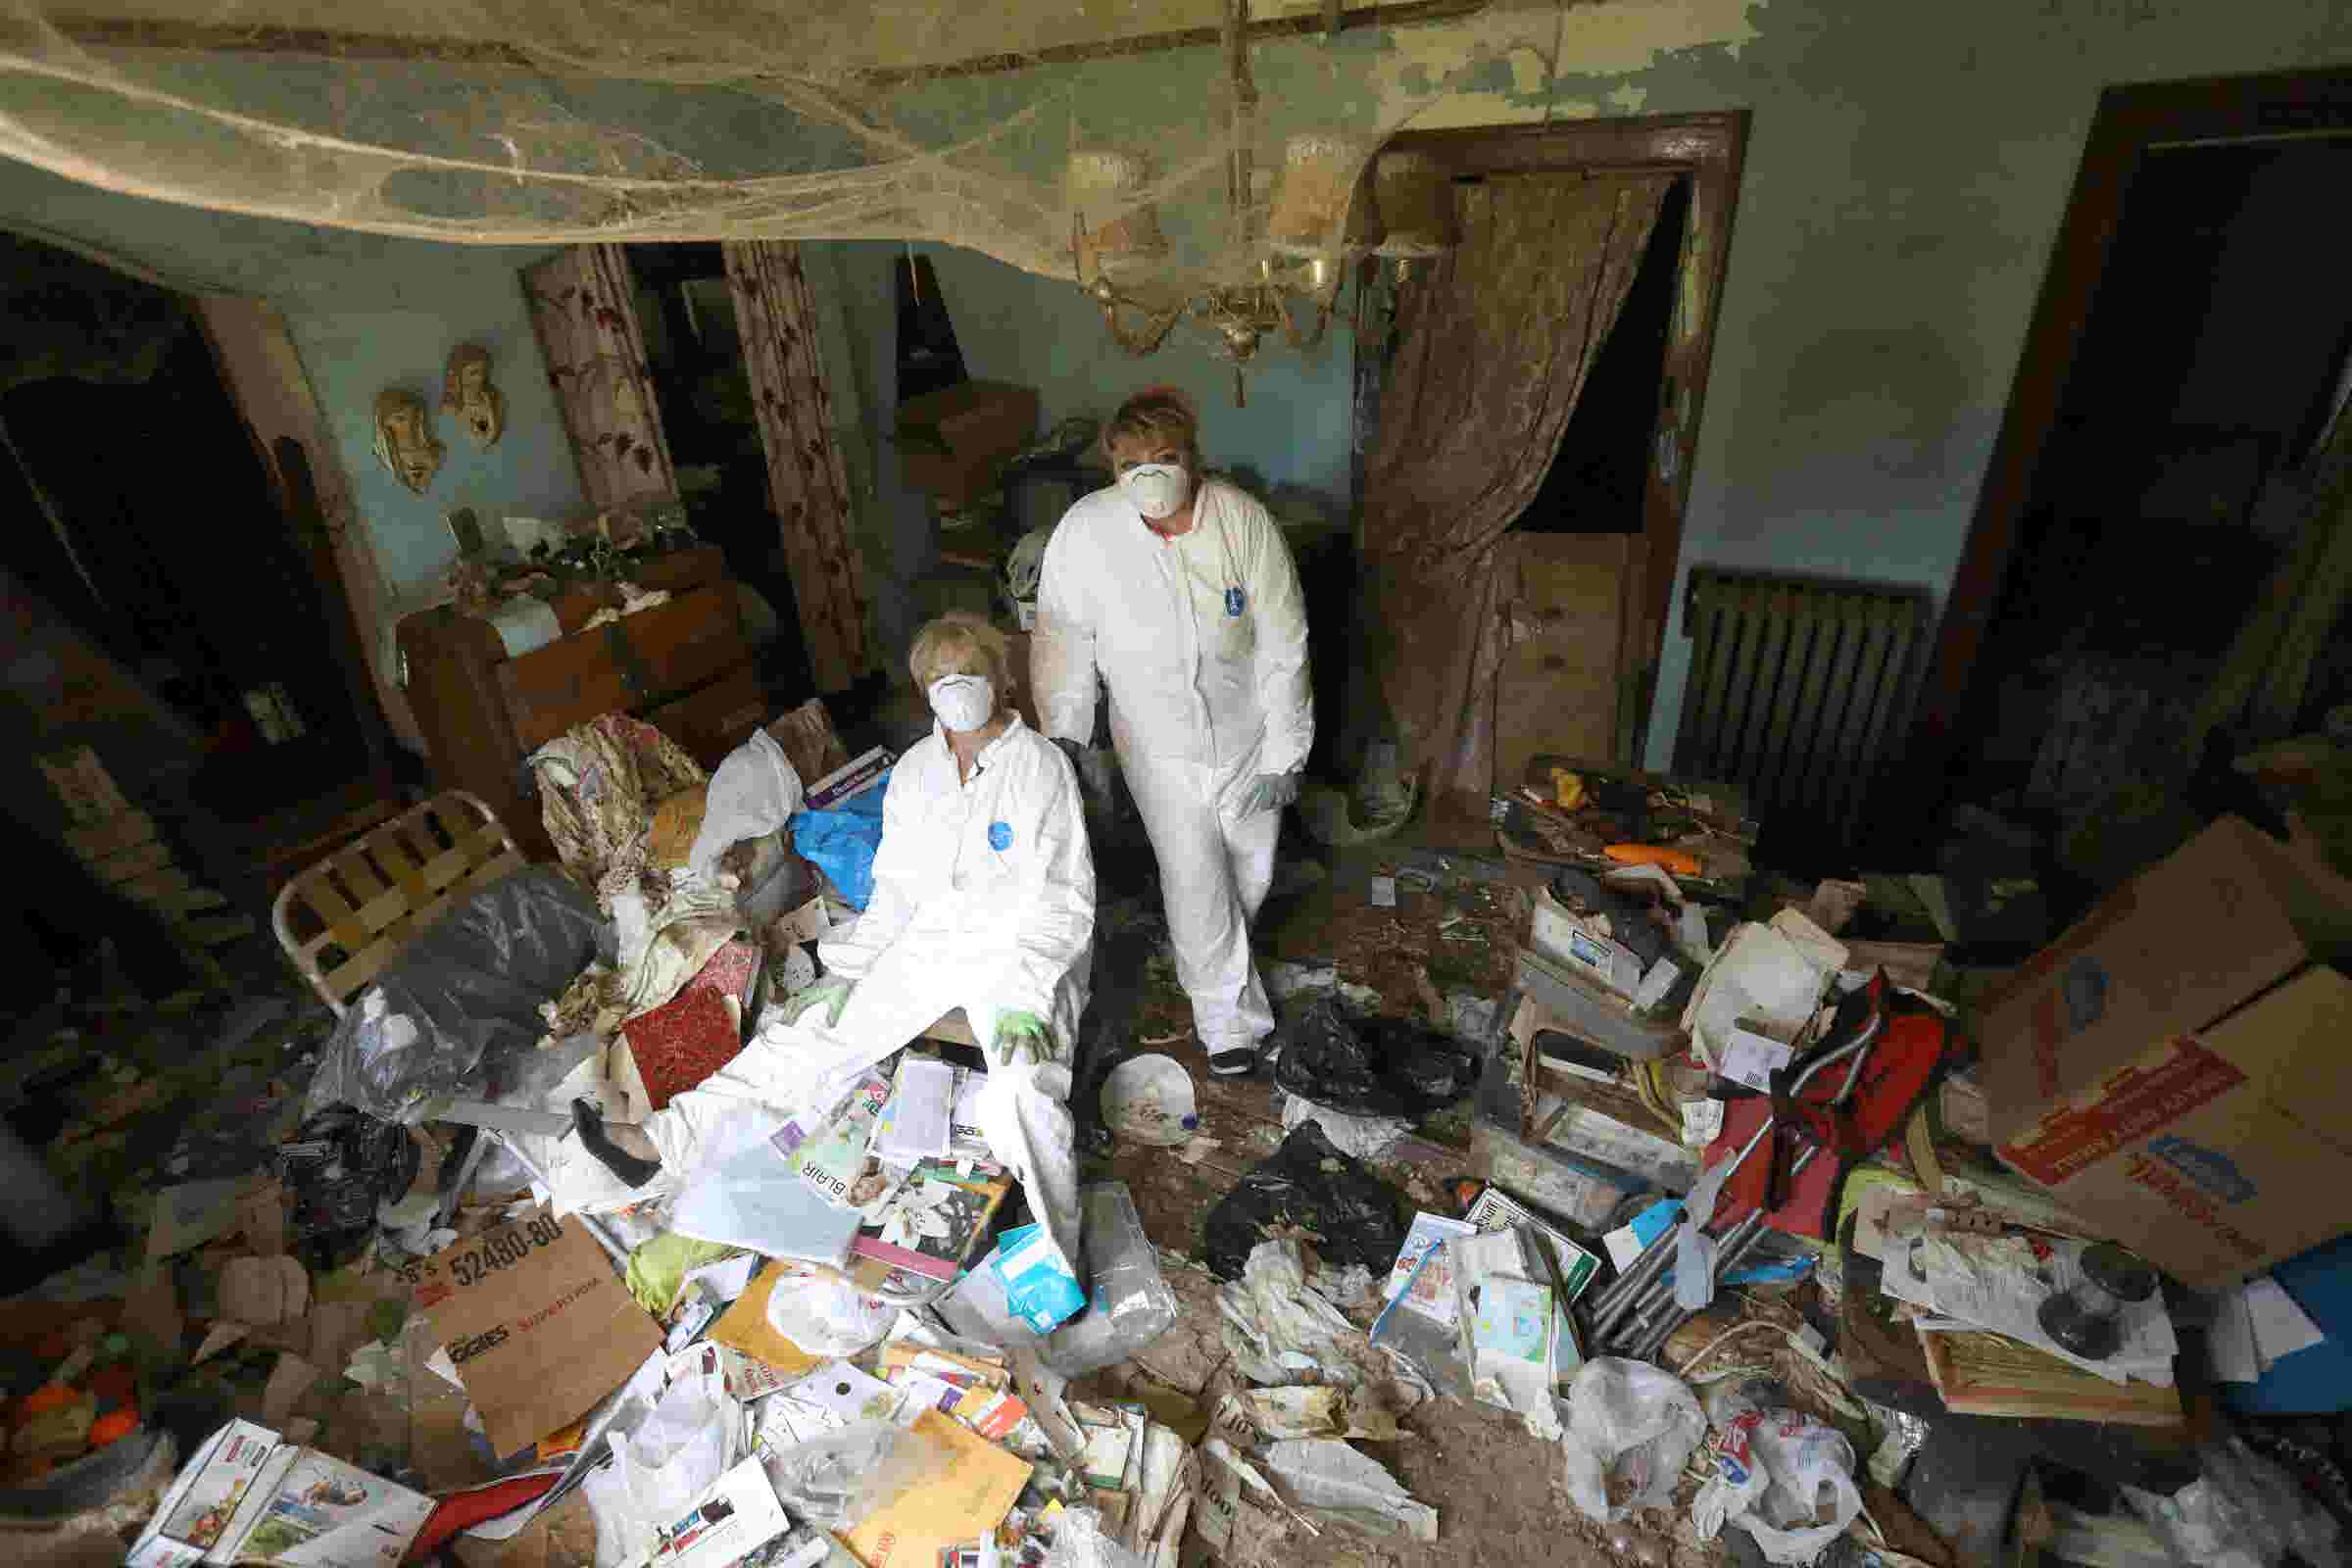 The tragic tale and death of a hoarder